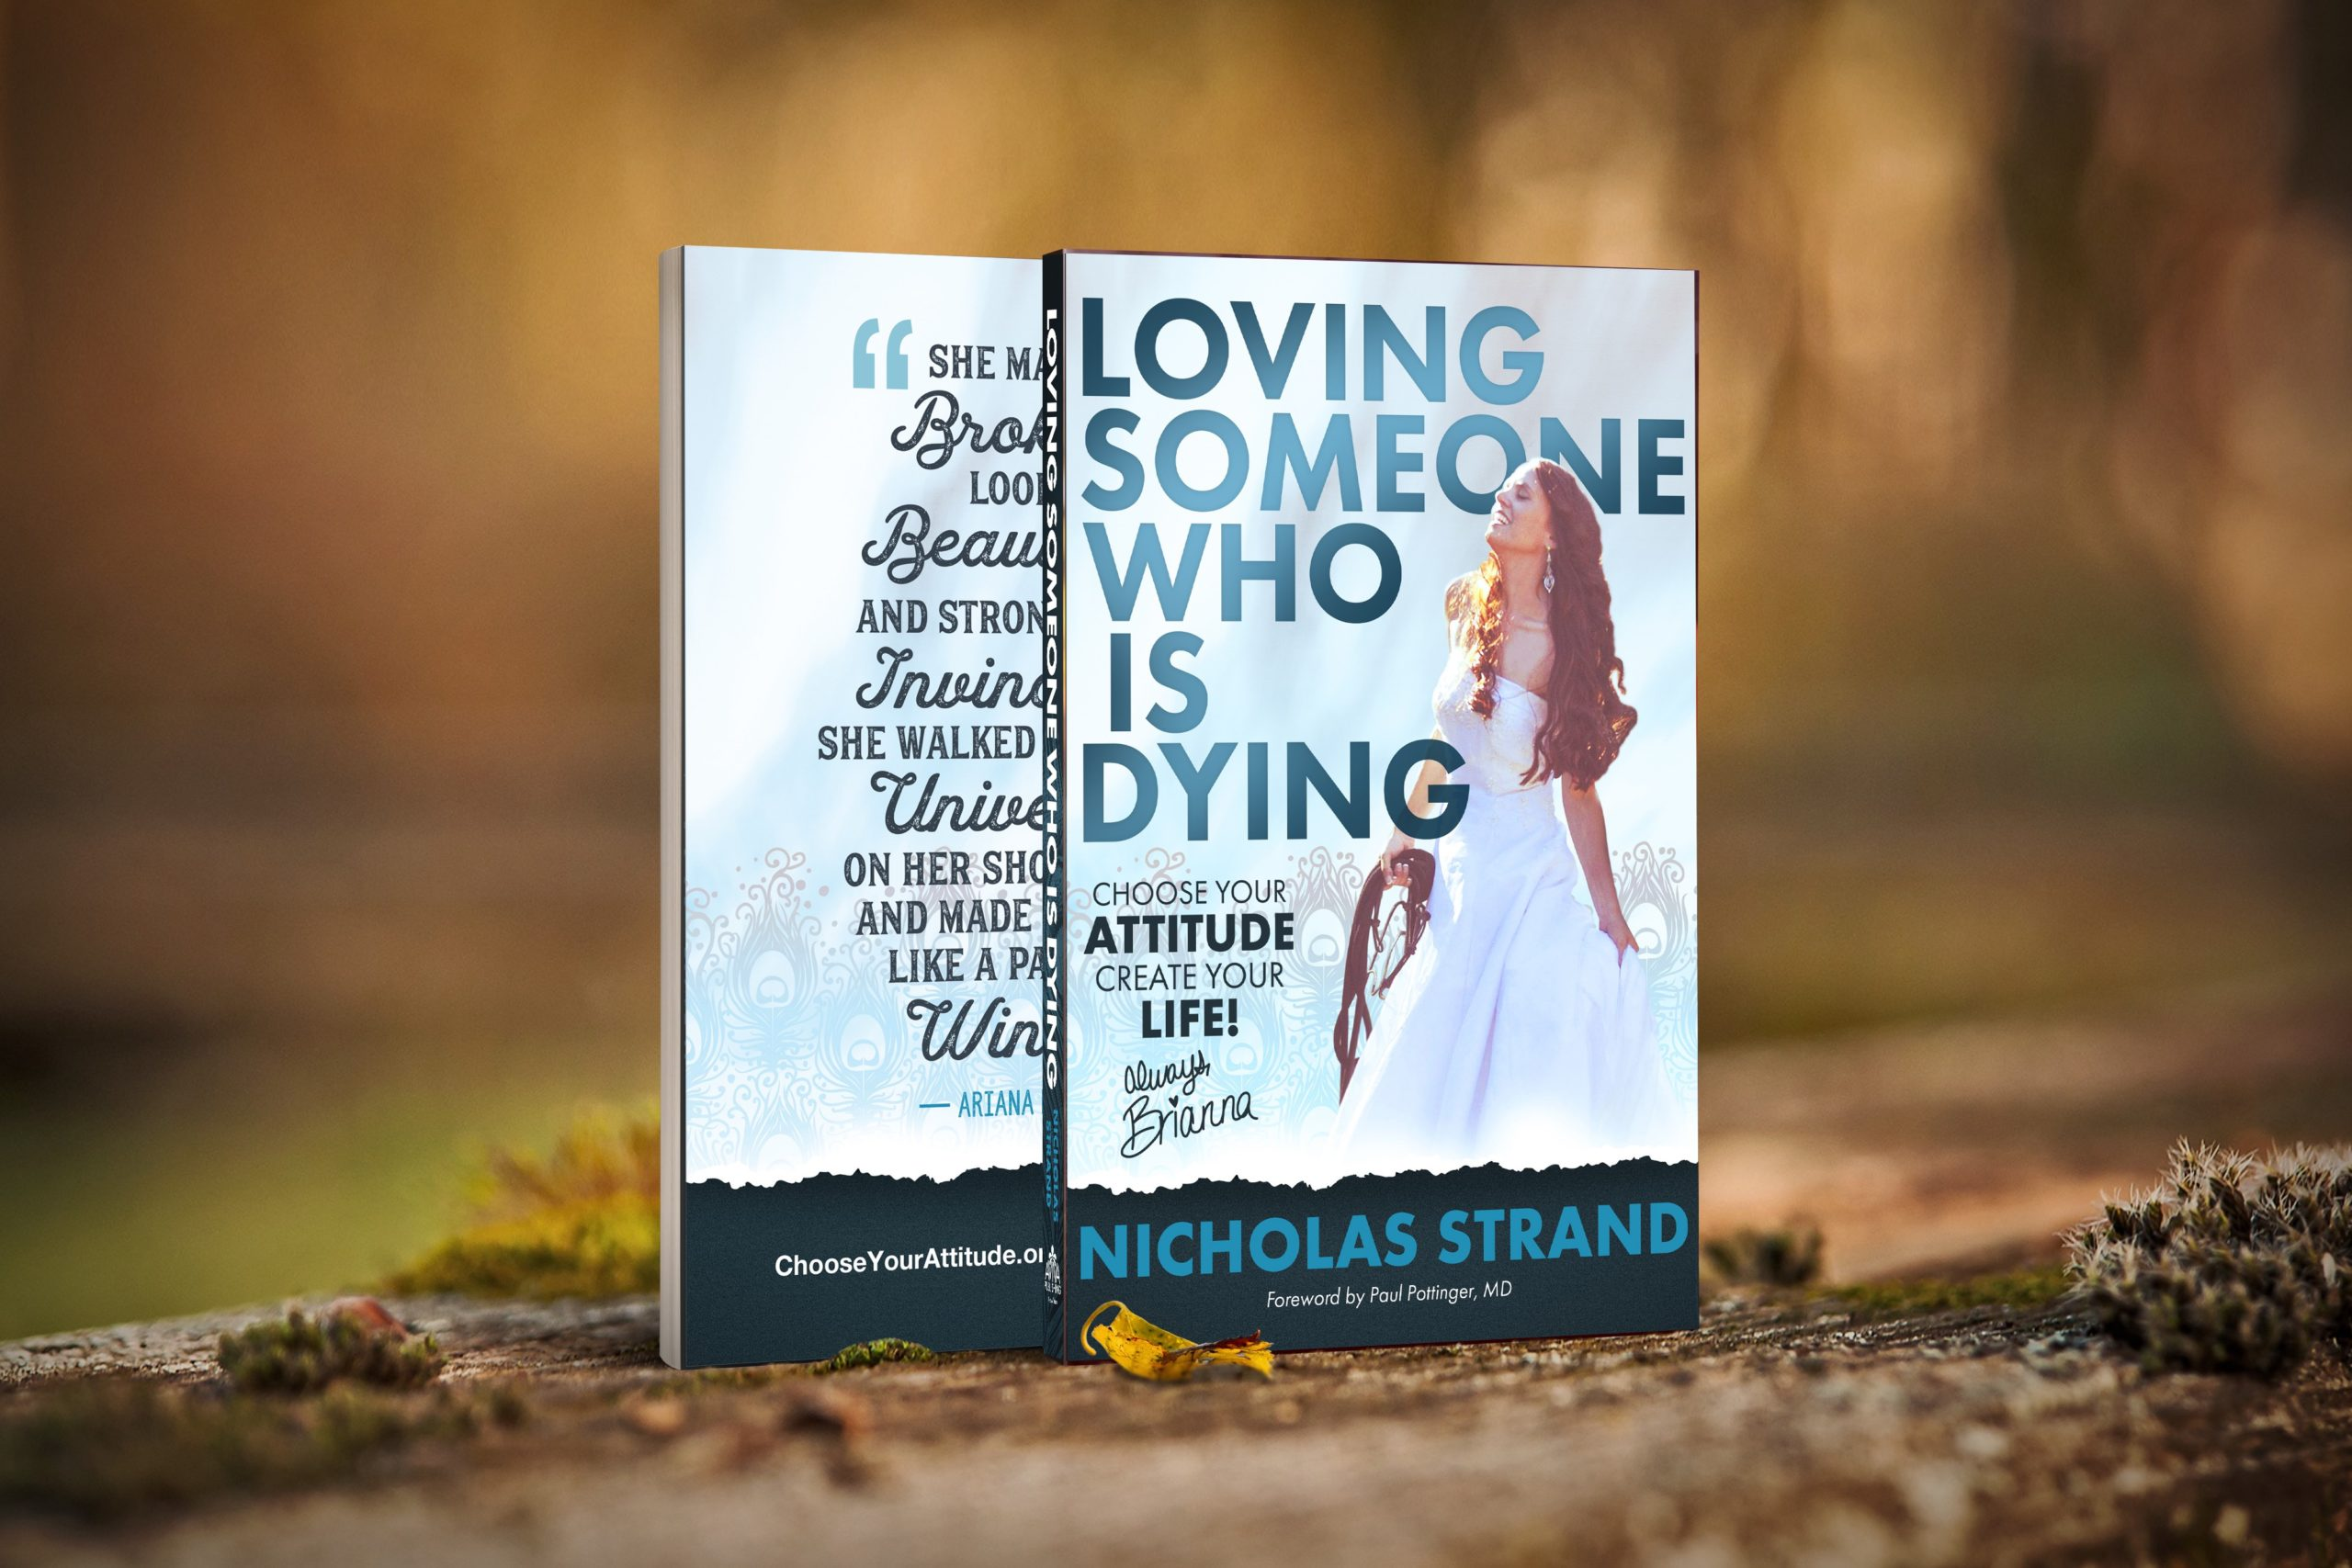 New Book 'Loving Someone Who is Dying: Choose Your Attitude, Create Your Life!' Launches